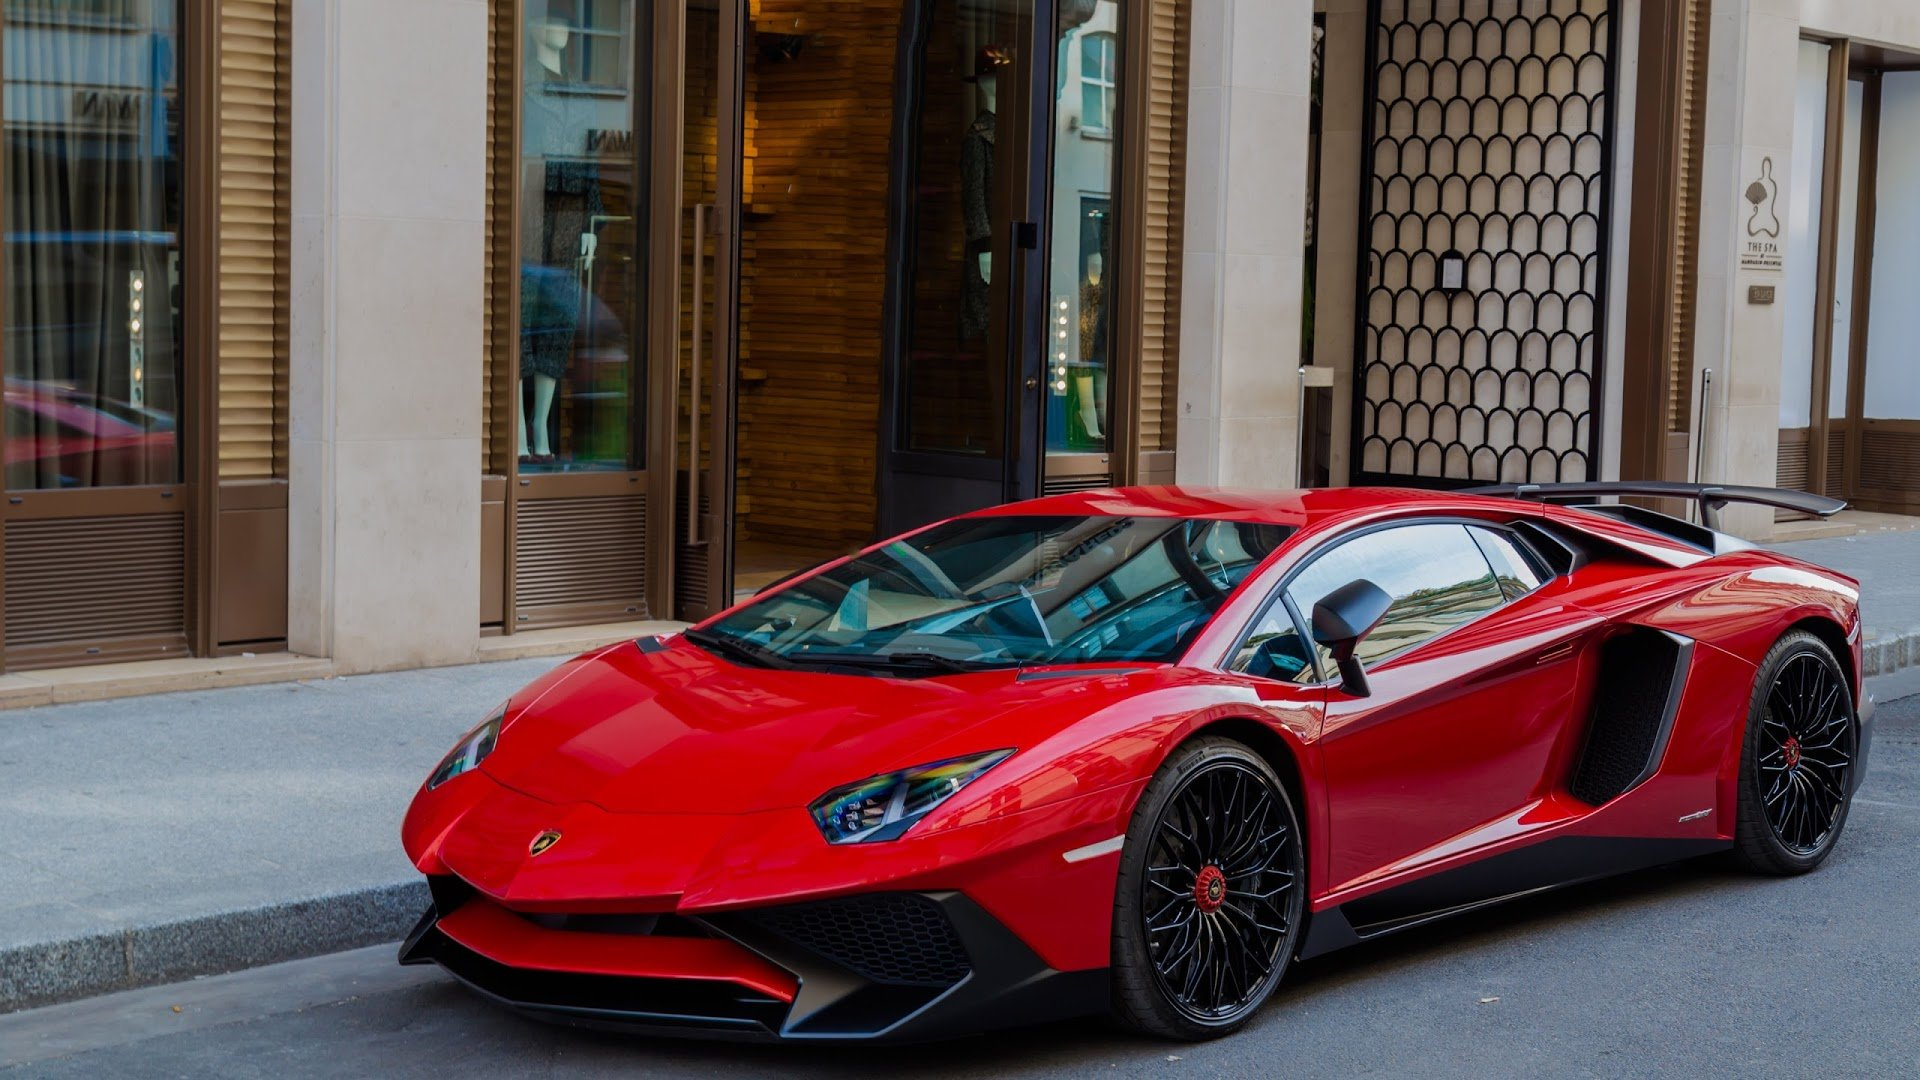 40 lamborghini 4k wallpaper on wallpapersafari - Wallpaper hd 4k car ...